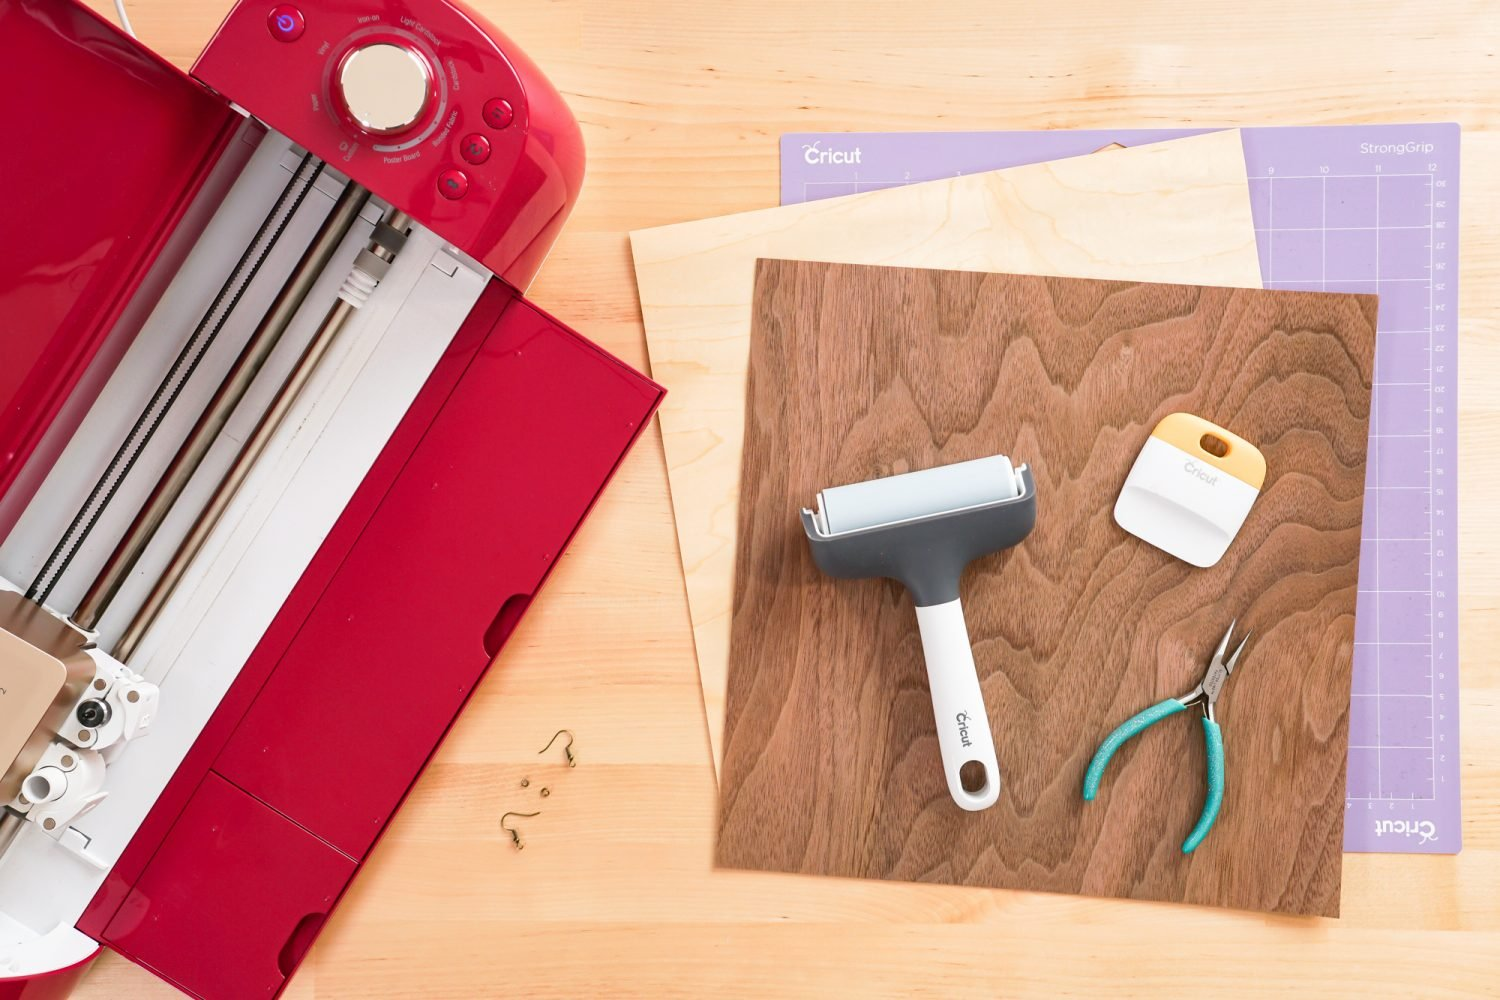 Supplies needed for this project: Cricut, purple StrongGrip mat, two colors of Cricut veneer, brayer, scraper, jewelry pliers, earring findings.